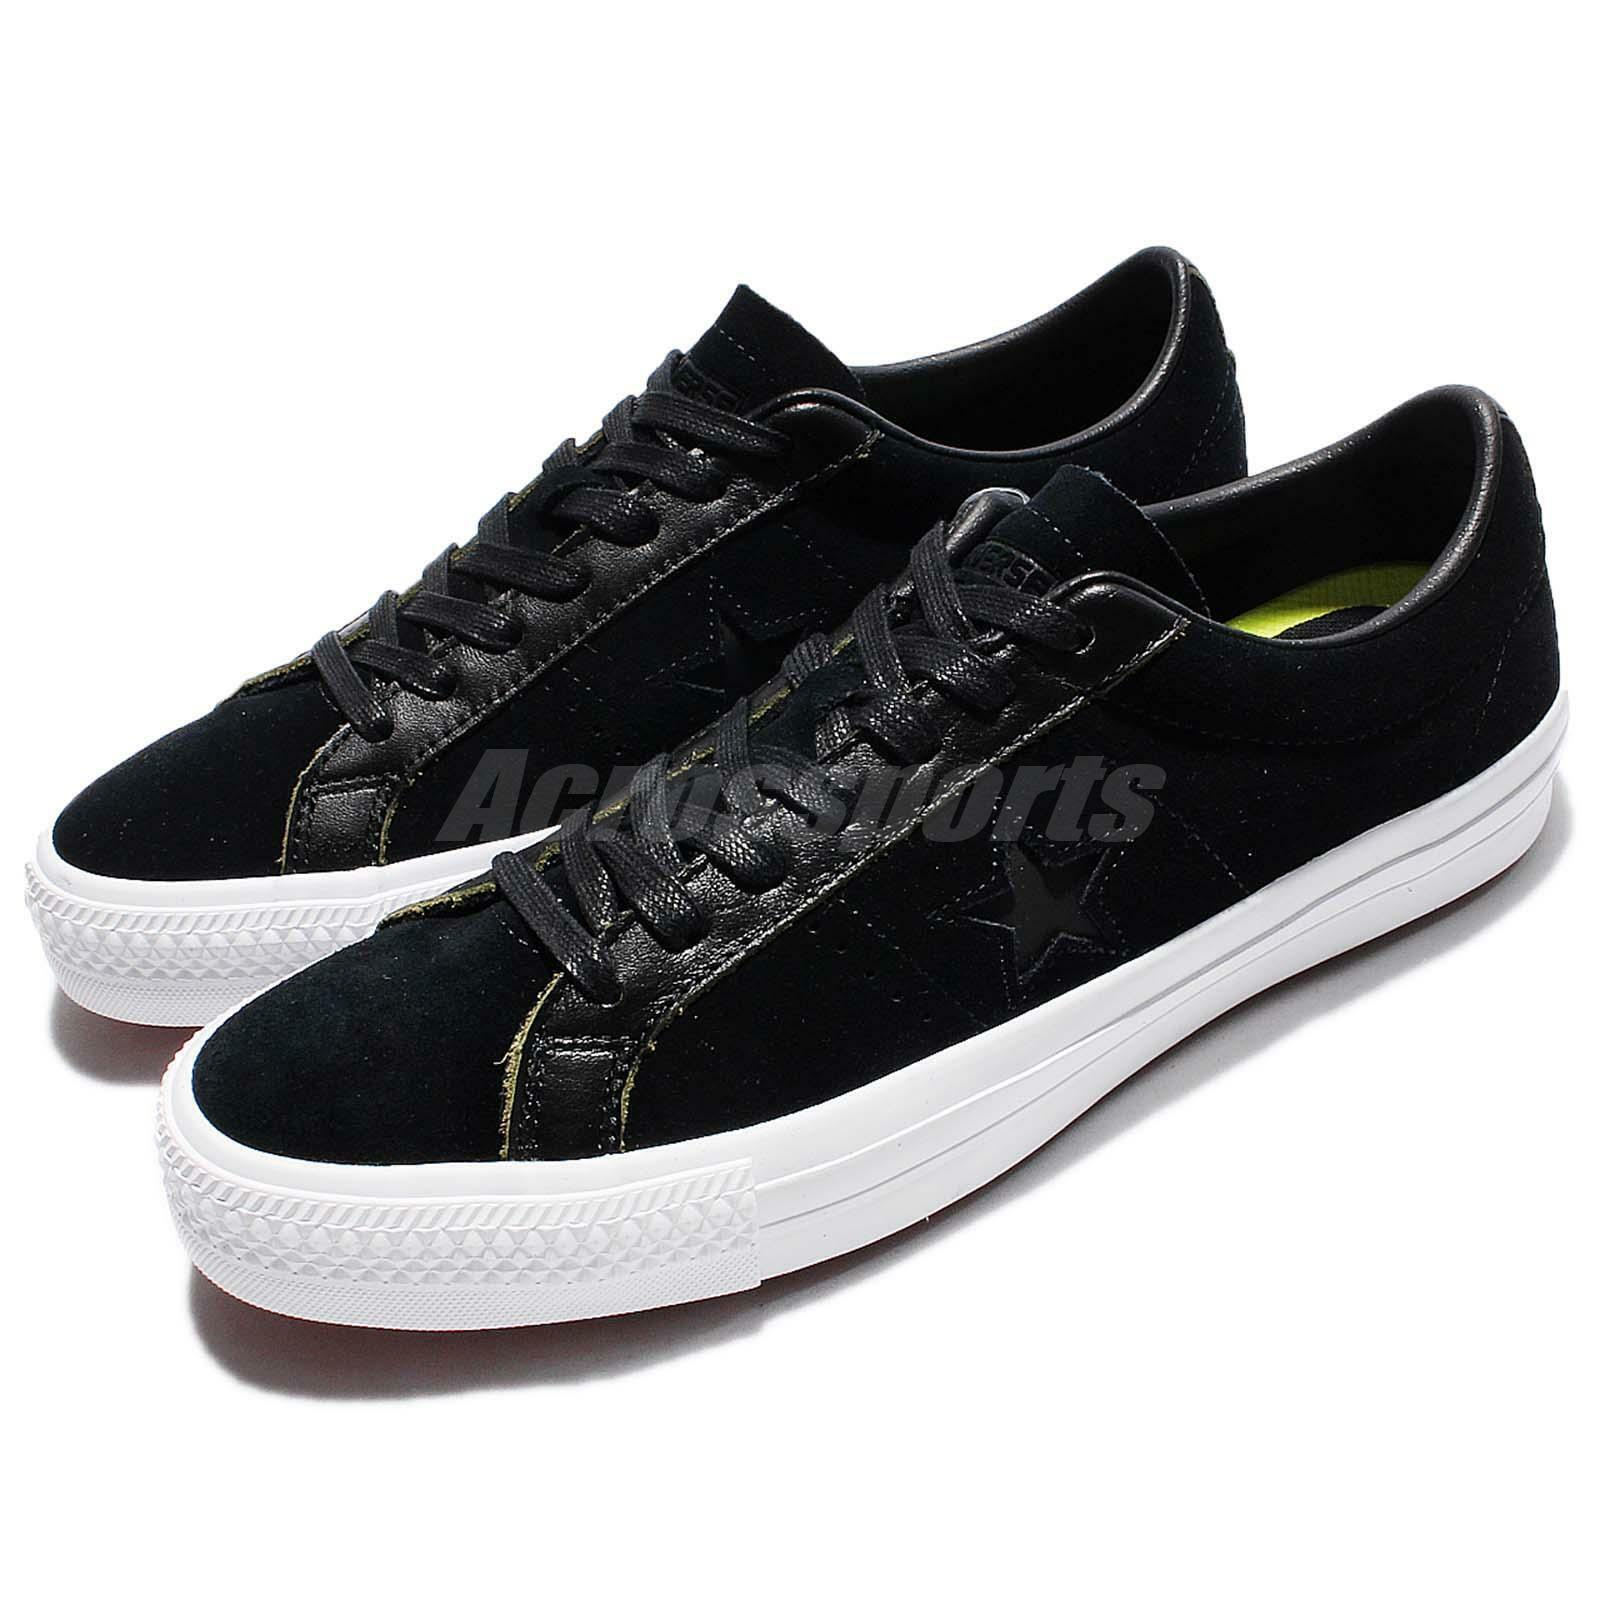 Converse One Star Pro Ruboff Leather Low Top Noir Men Classic Chaussures 155524C